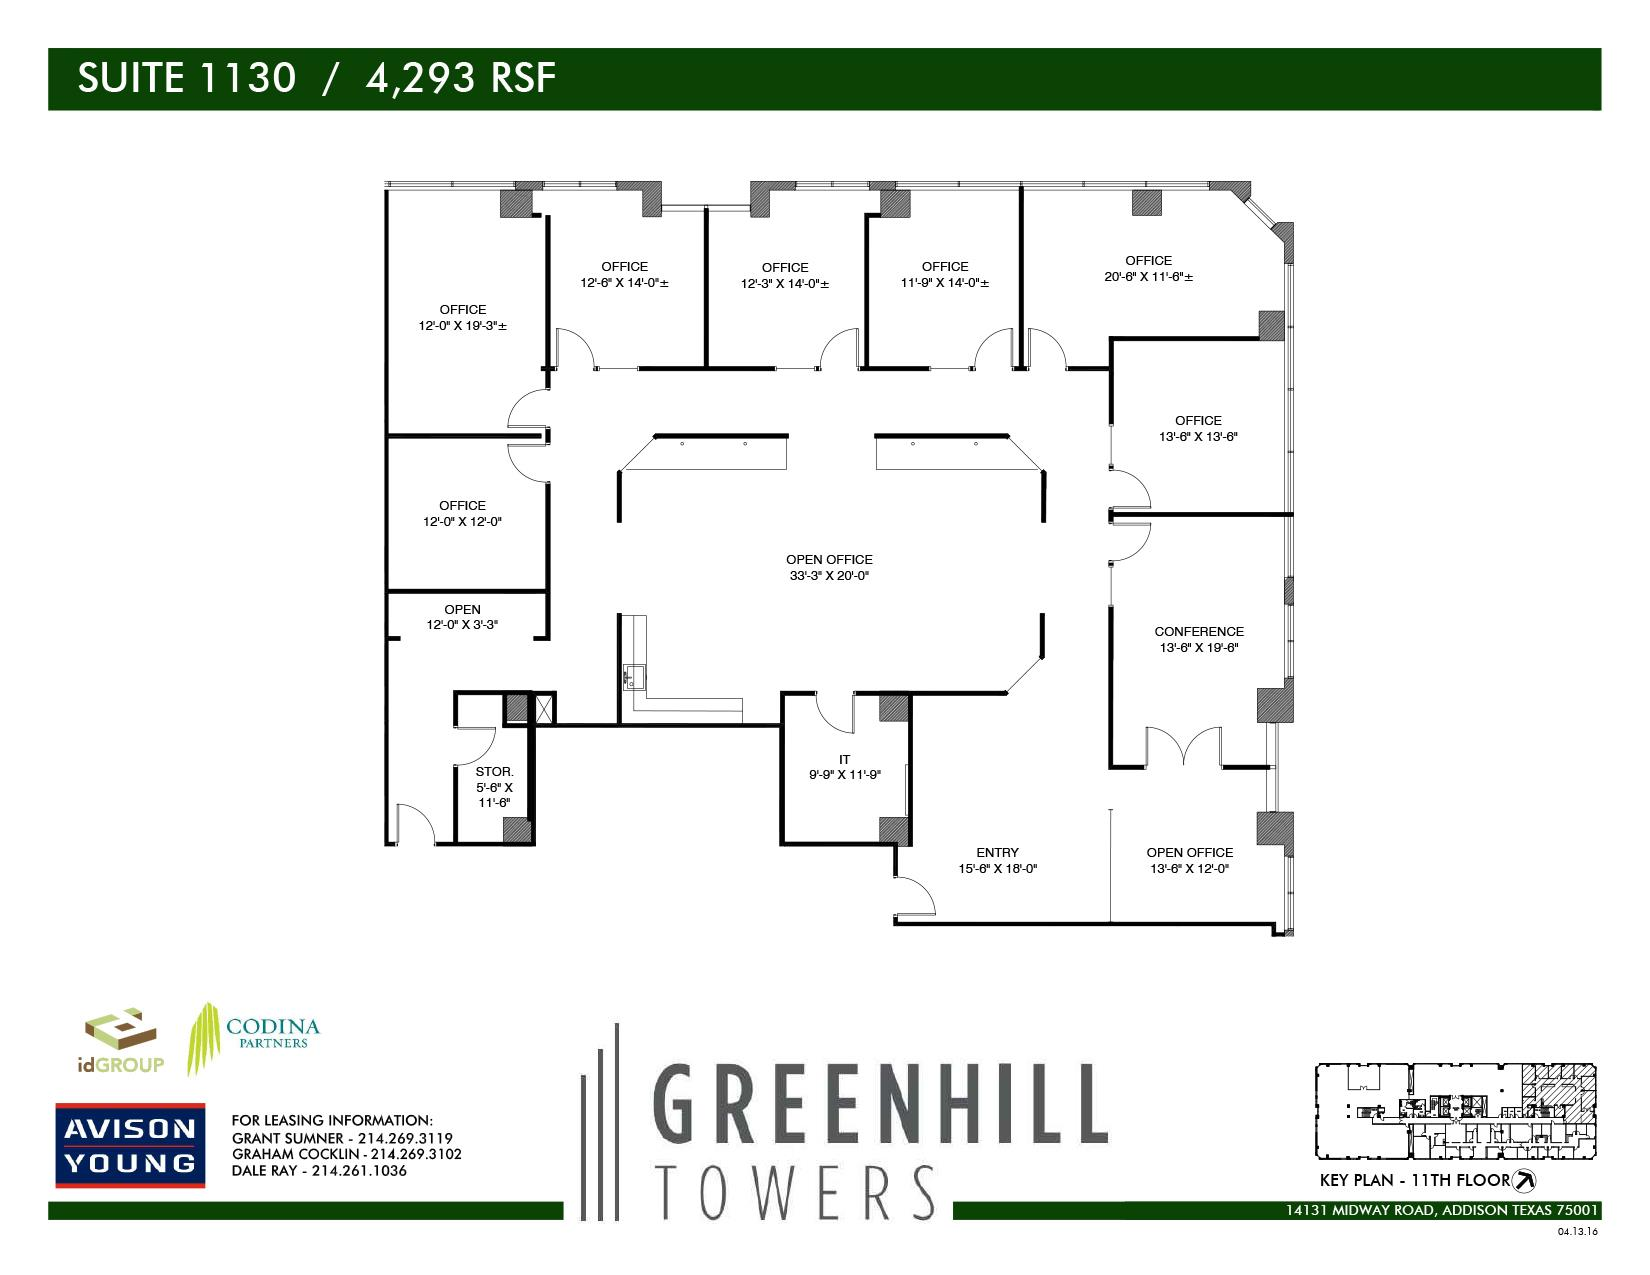 Greenhill Towers | Codina Partners - Suite 1130